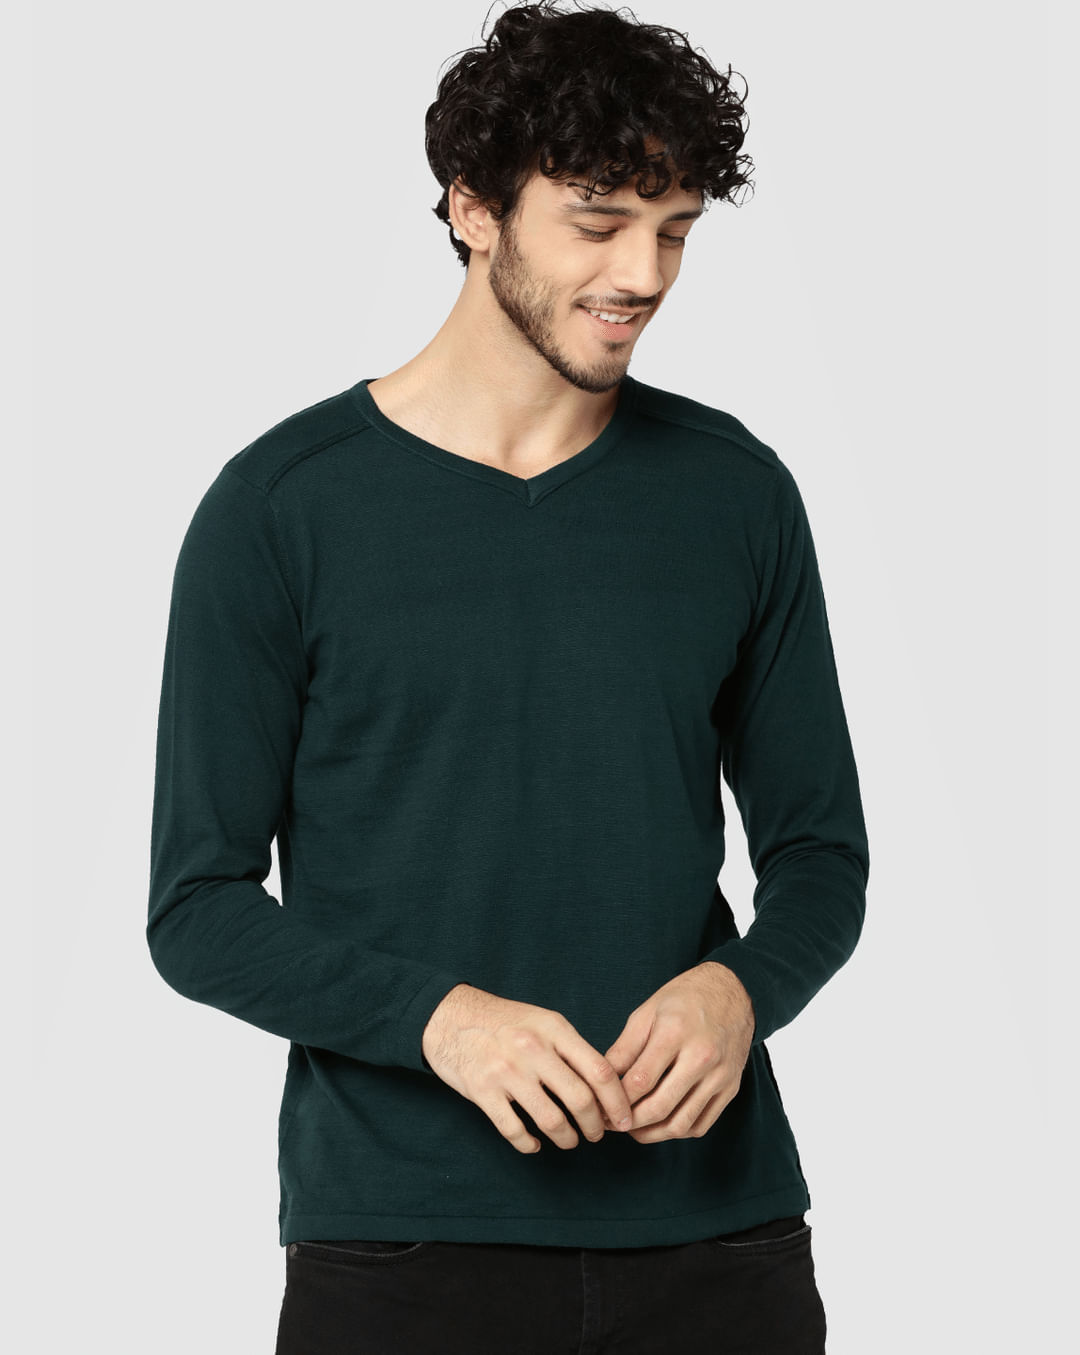 Buy Men Green V Neck Full Sleeves T Shirt Online Jack Jones